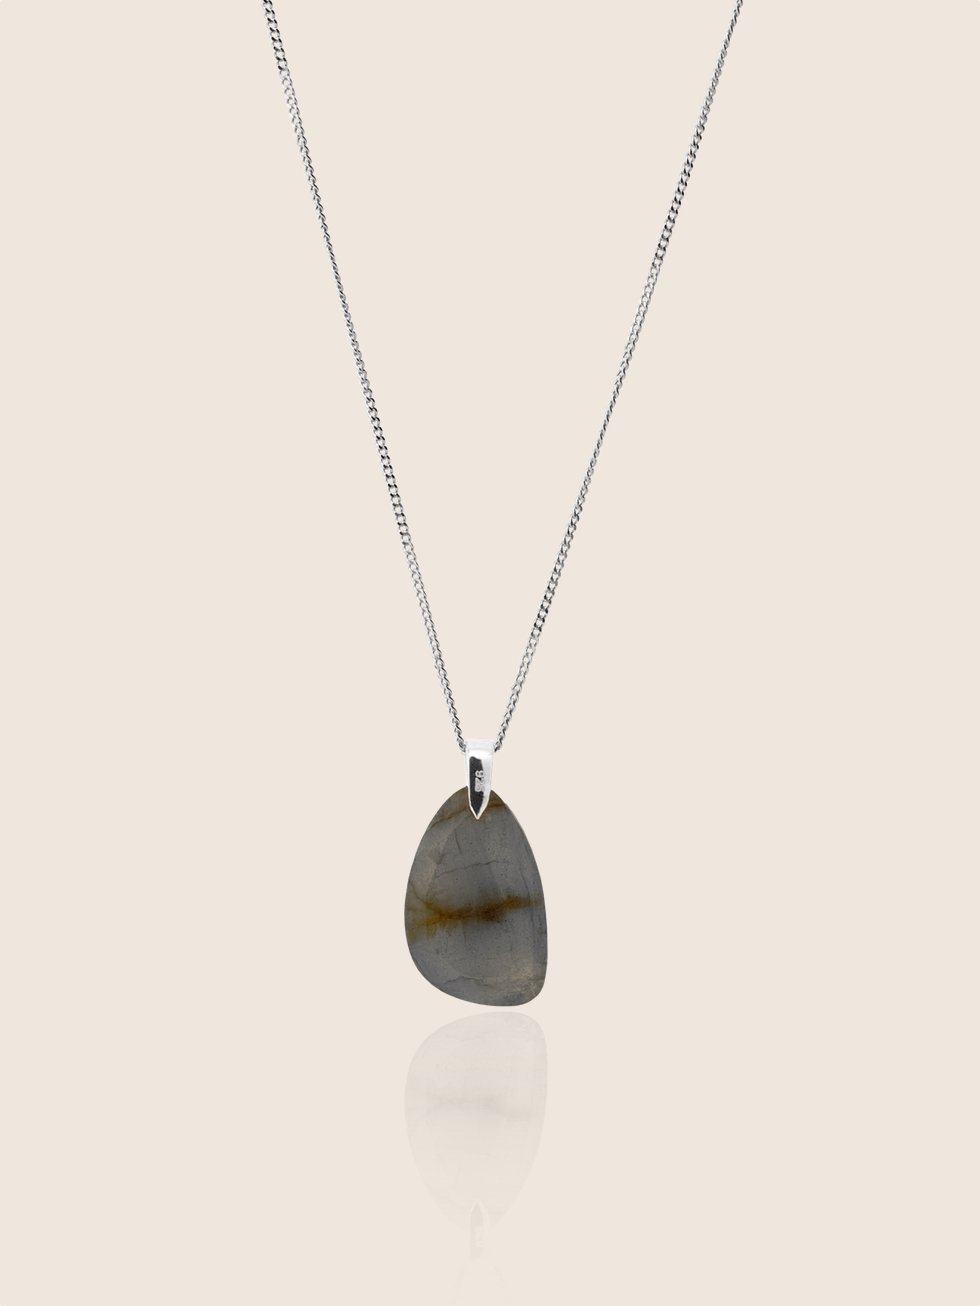 THE SAND silver necklace